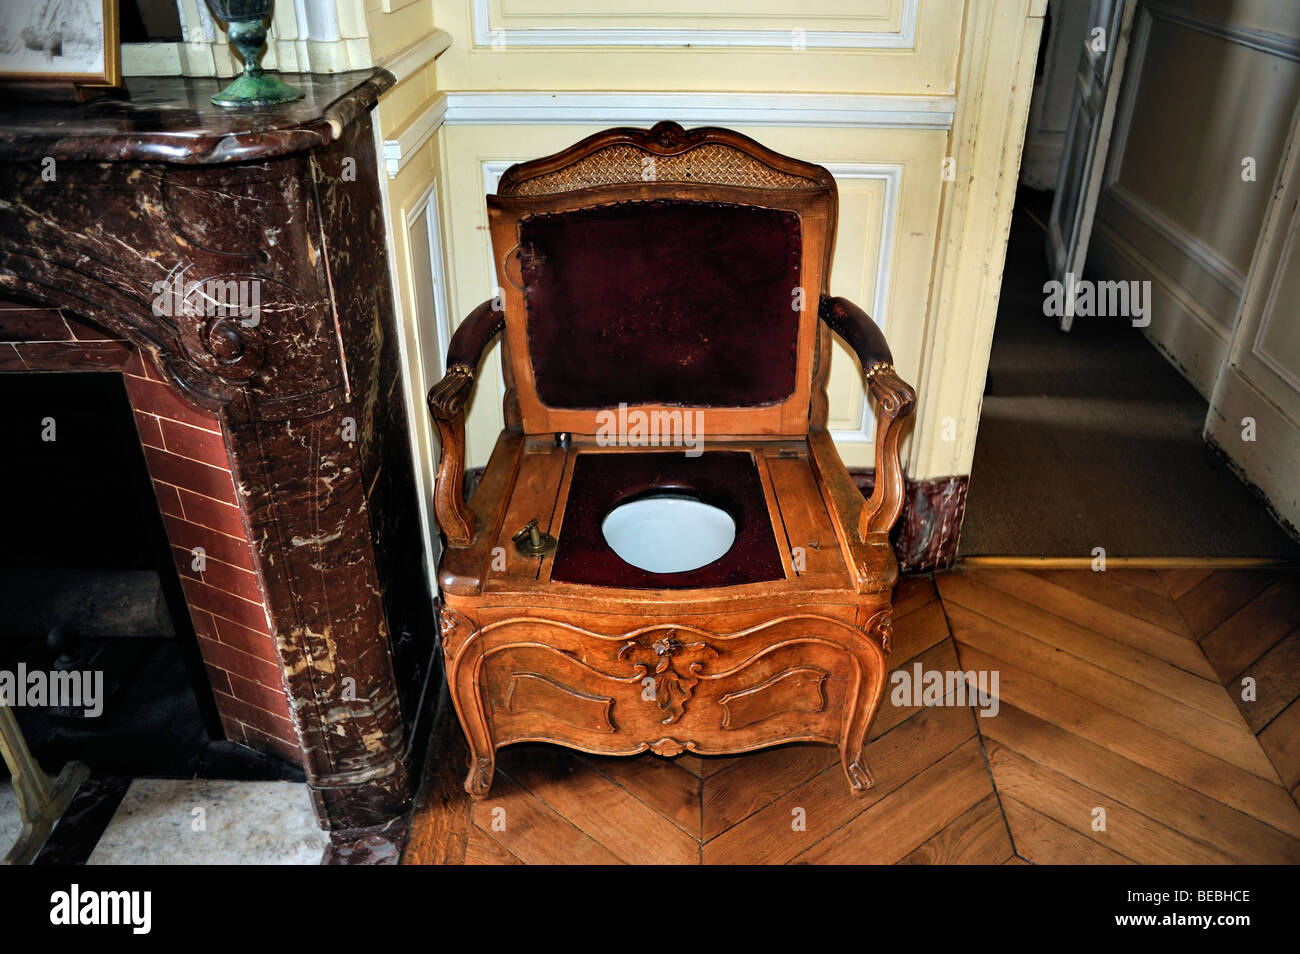 Paris, France - Antique Furniture inside French Monuments,